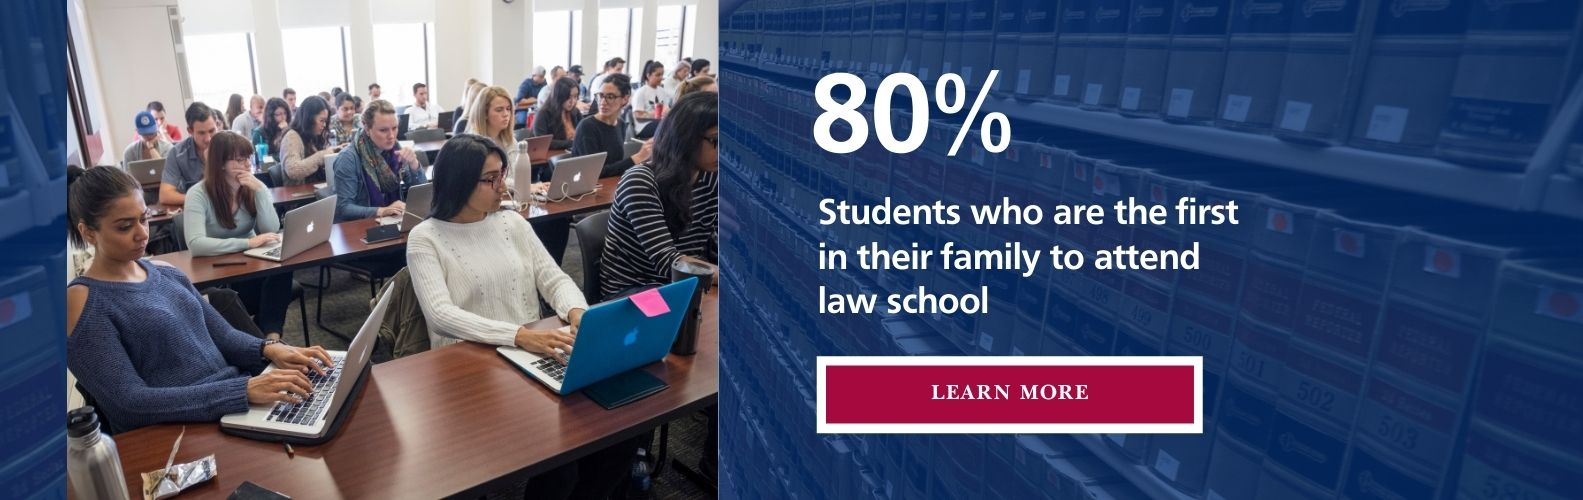 70 percent of students are the first in their family to graduate from law school